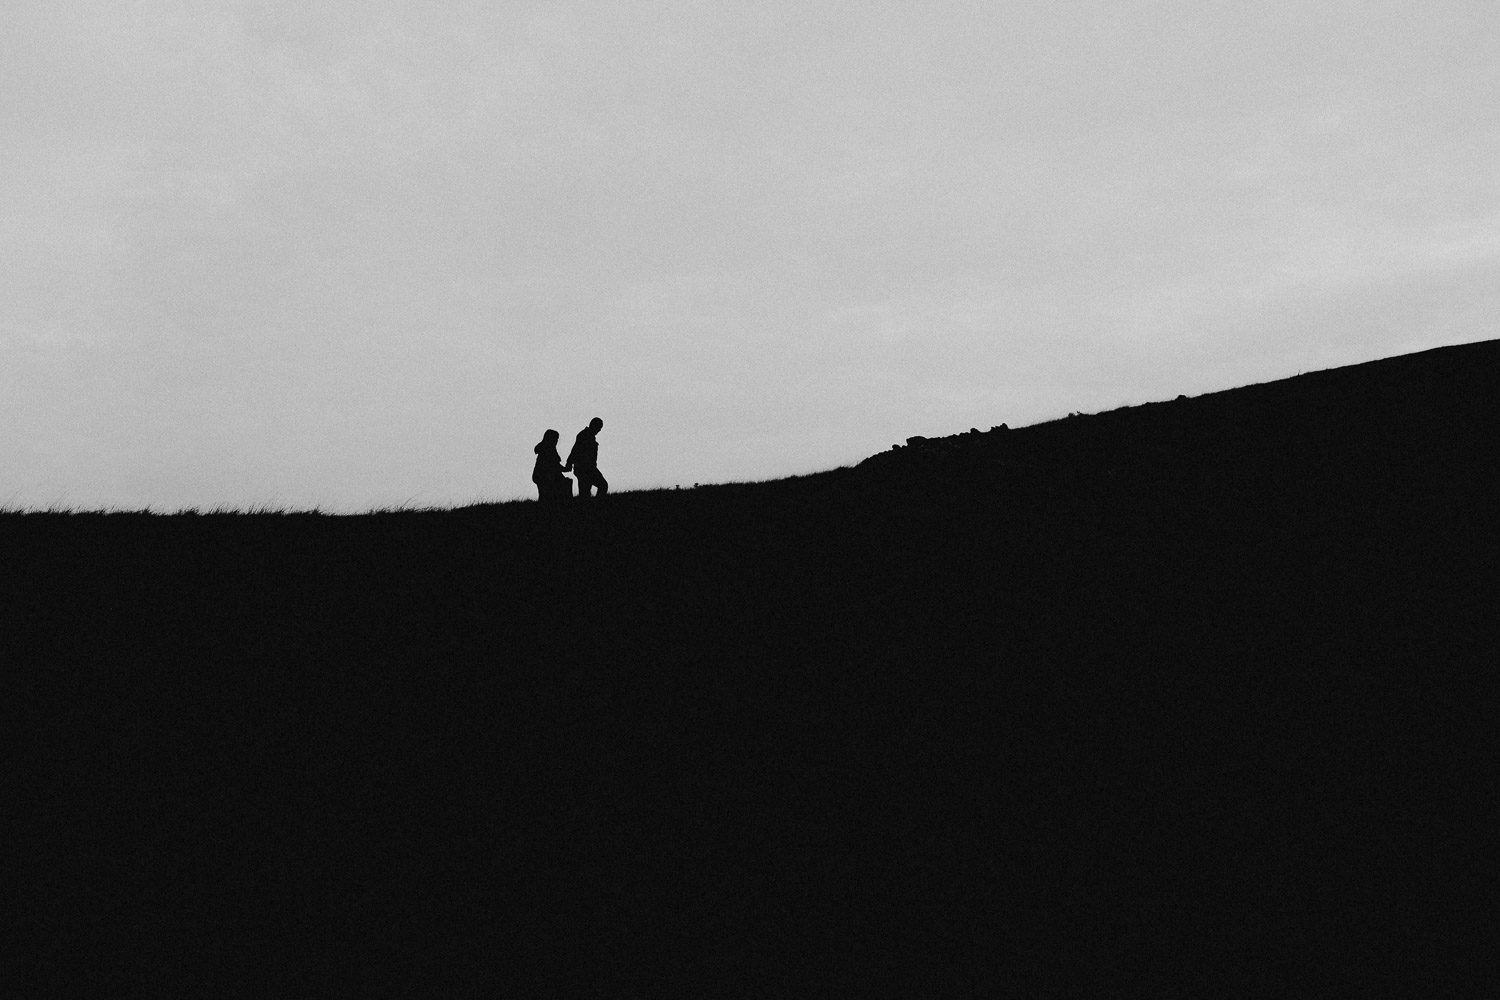 Image of Couple Walks Together on Top of the Hill